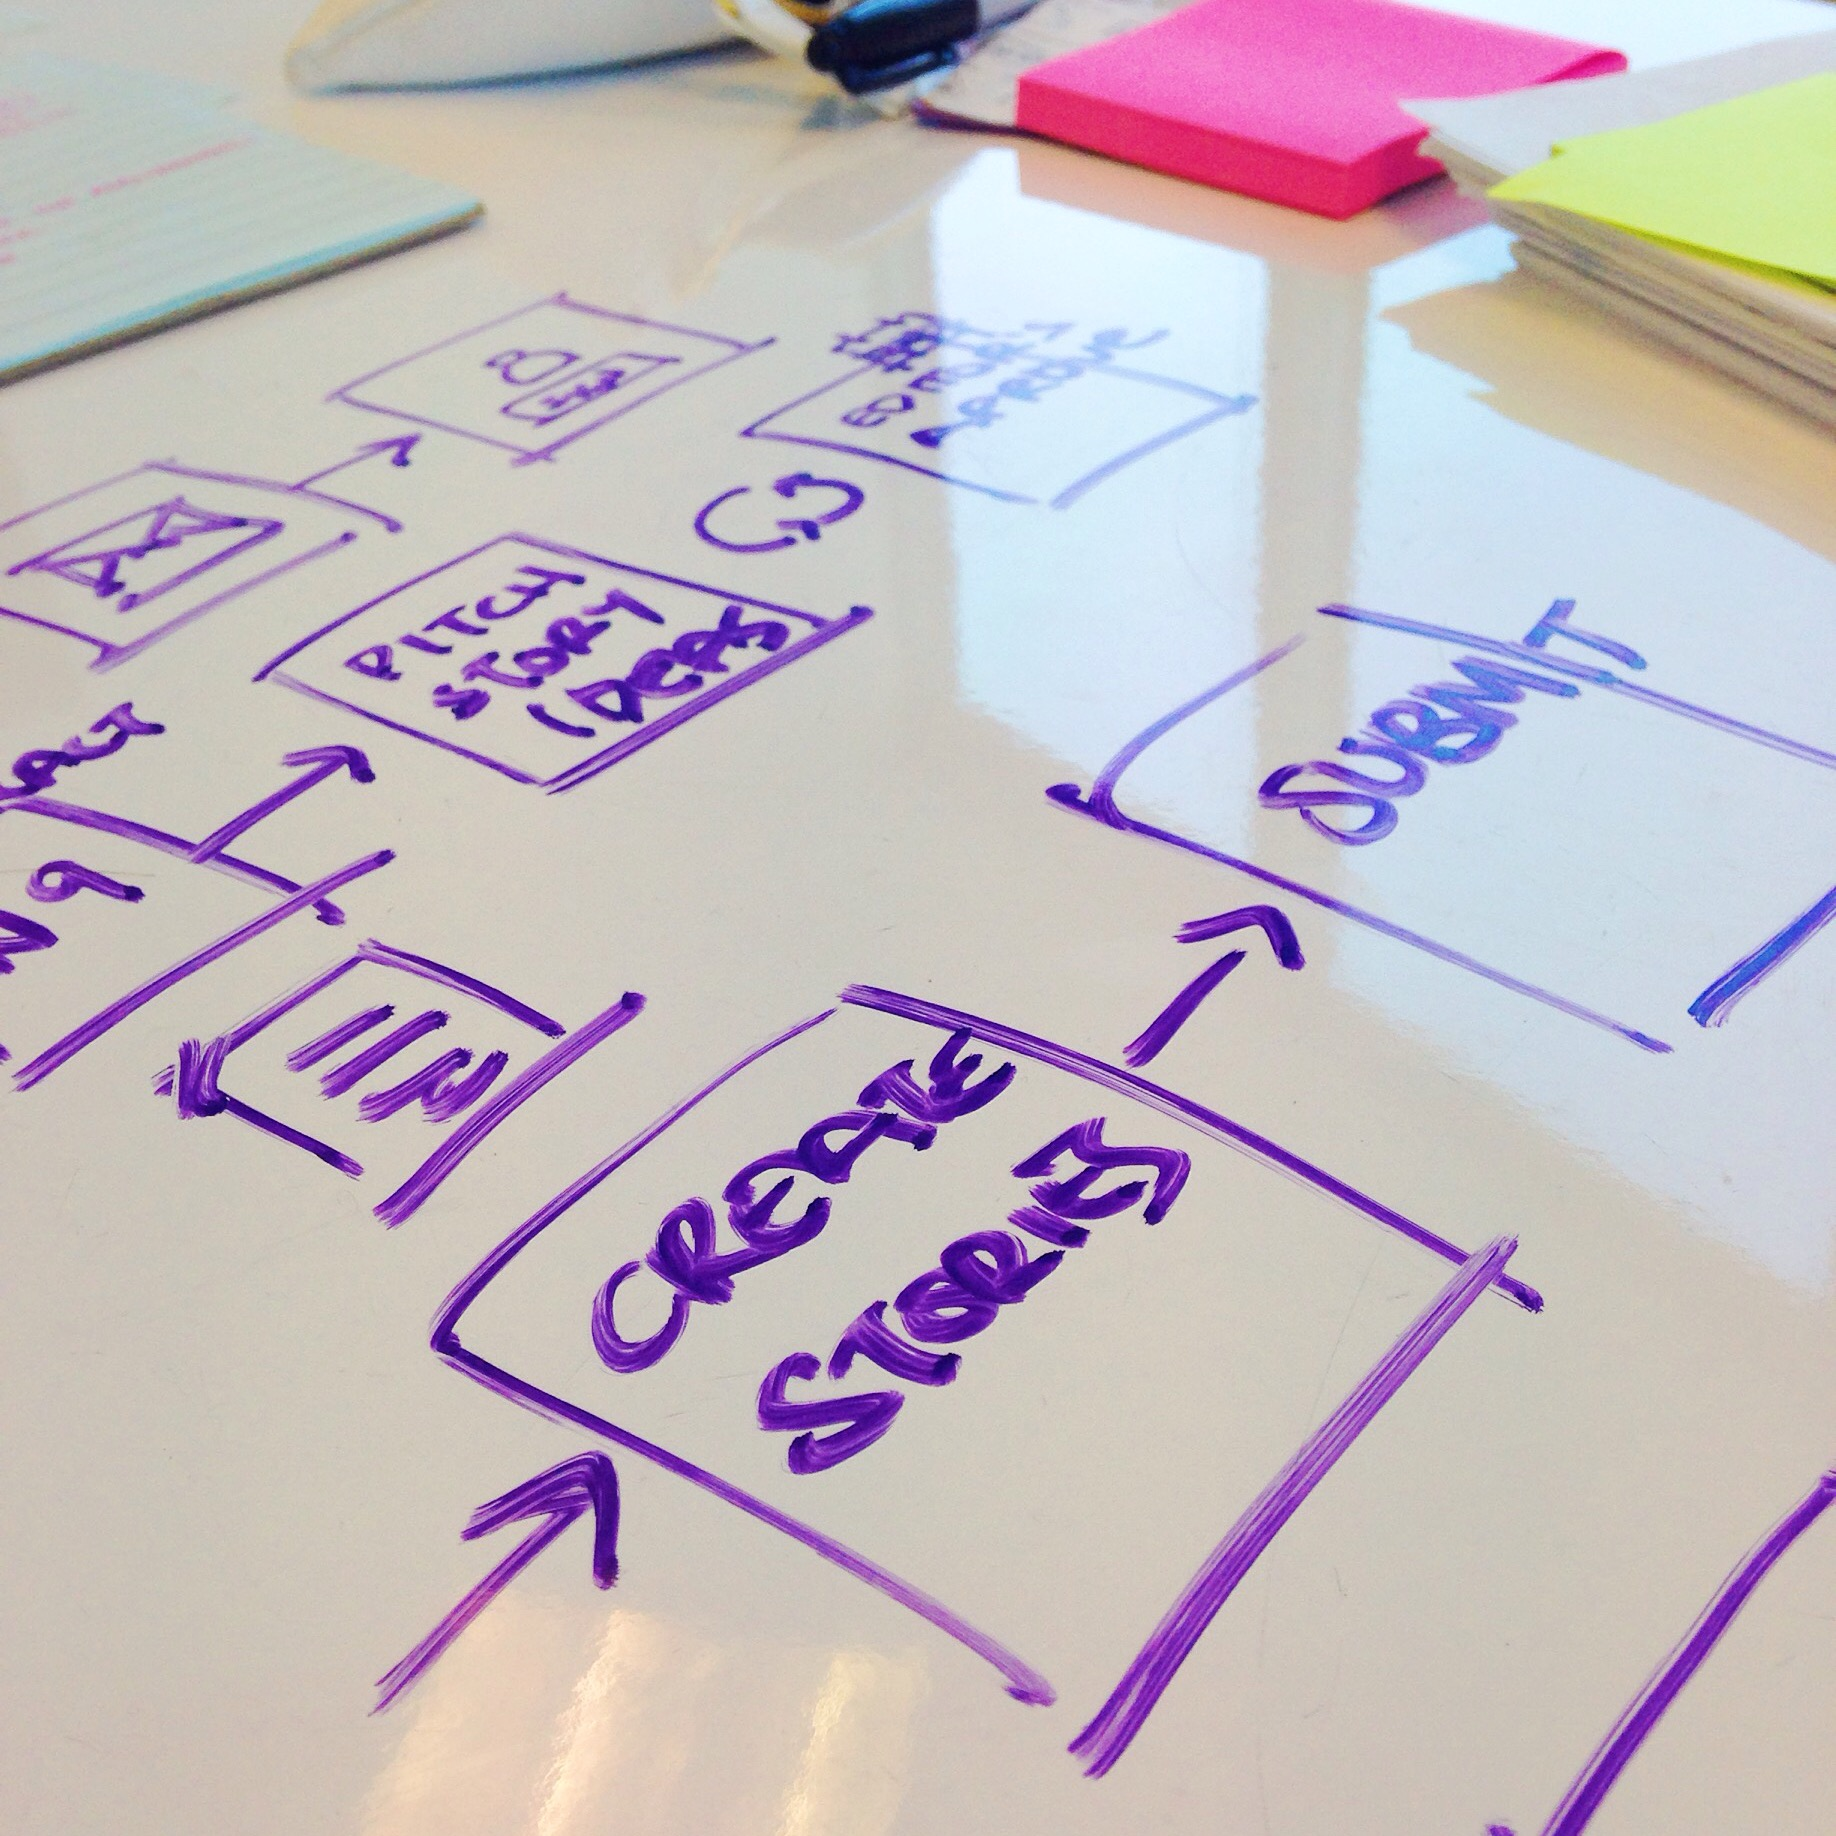 User experience customer journey map on whiteboard.